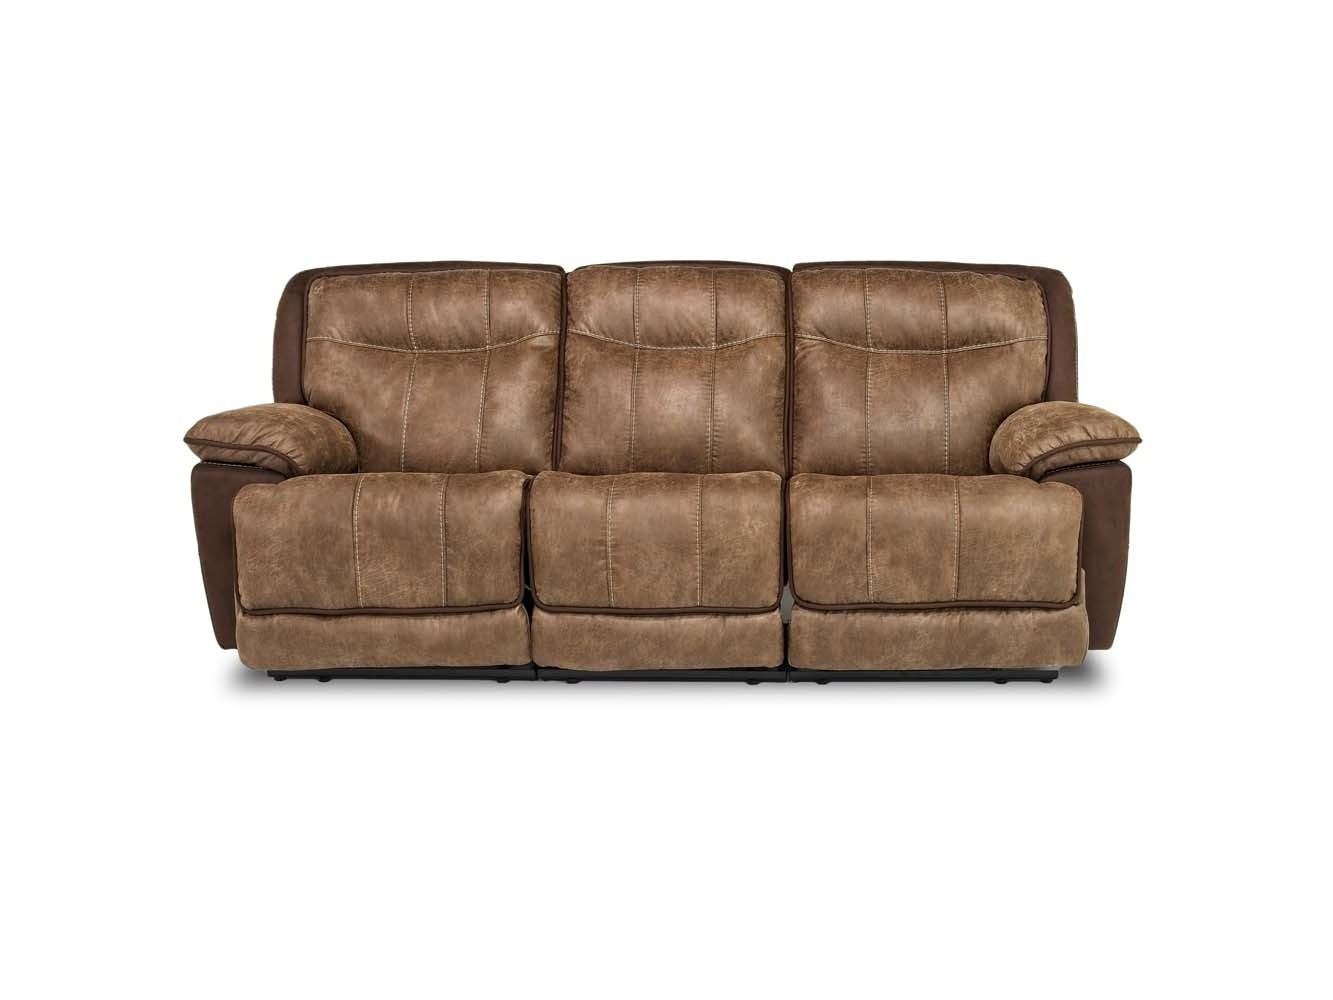 Best ideas about Triple Reclining Sofa . Save or Pin Bubba Triple Reclining Sofa Now.